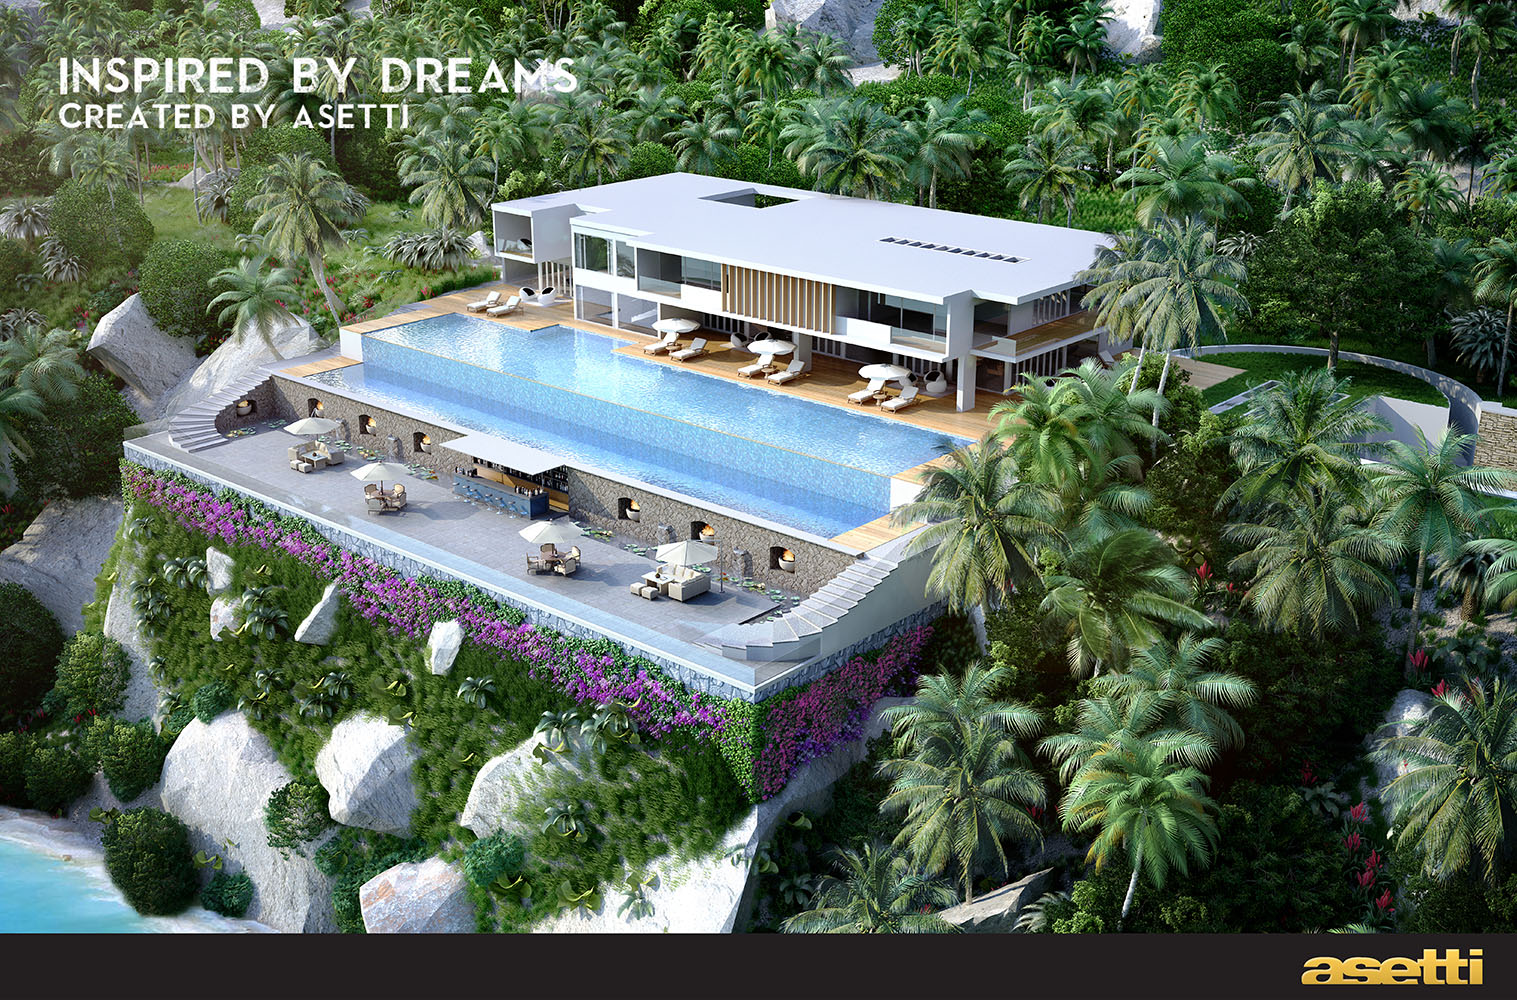 The New $250m \'James Bond\' Style Super Home is Ready for Launch ...